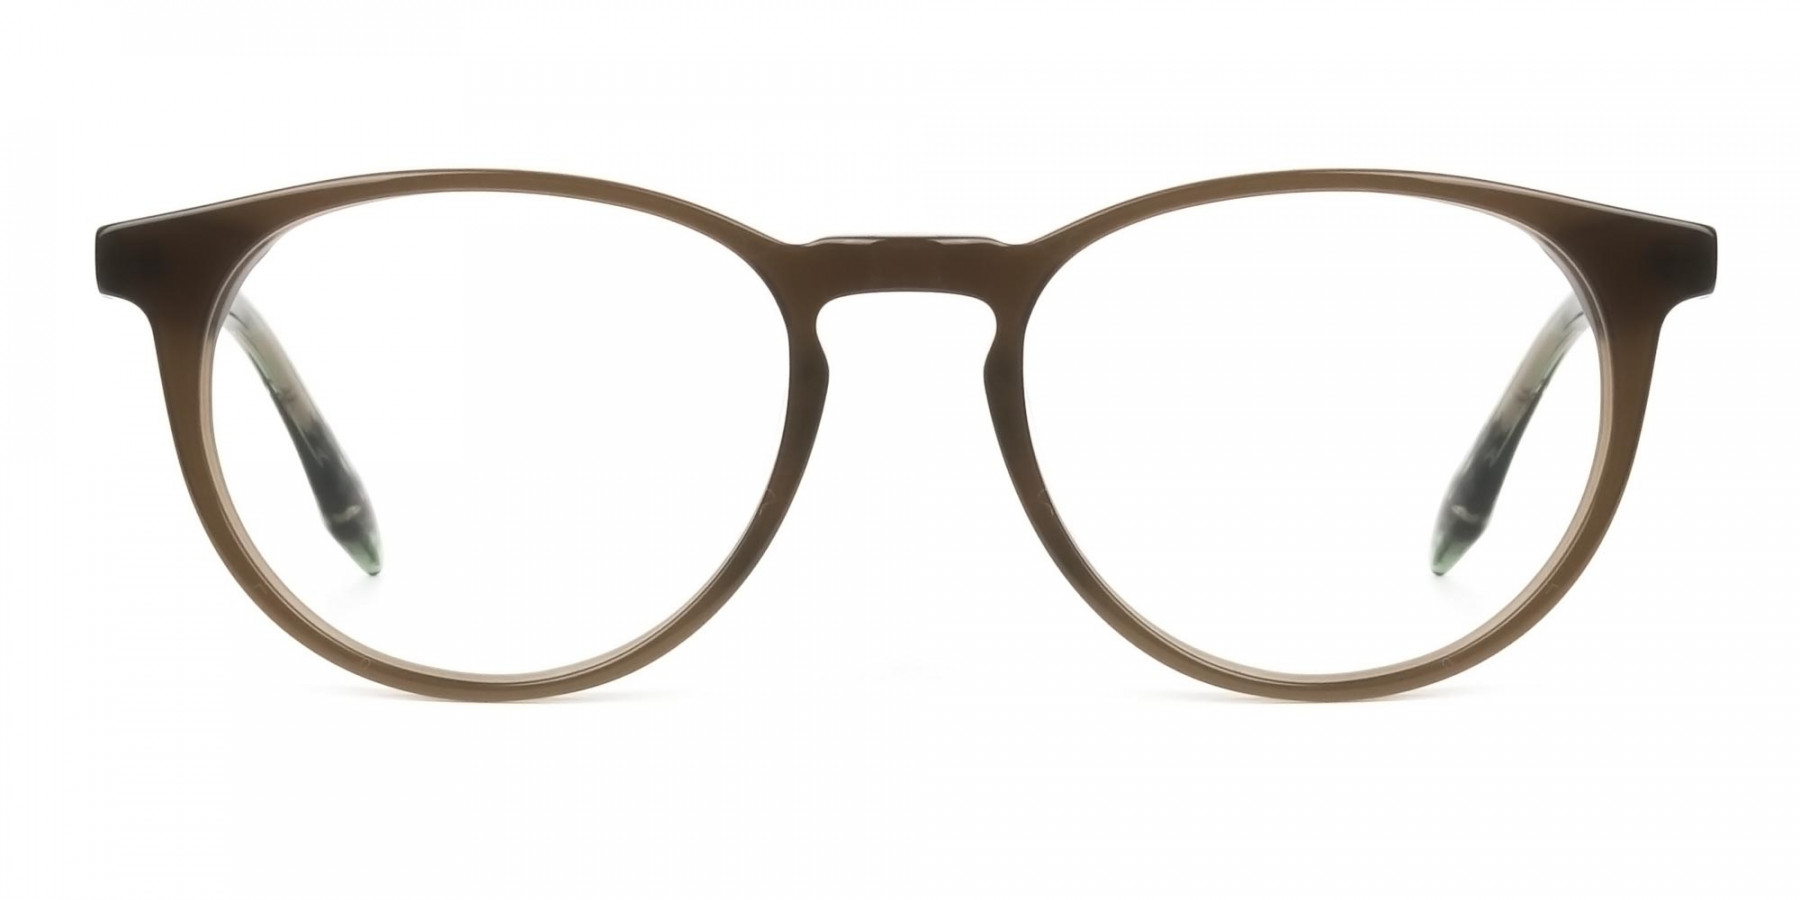 Keyhole Mocha Brown & Marble Hunter Green Glasses in Round - 1